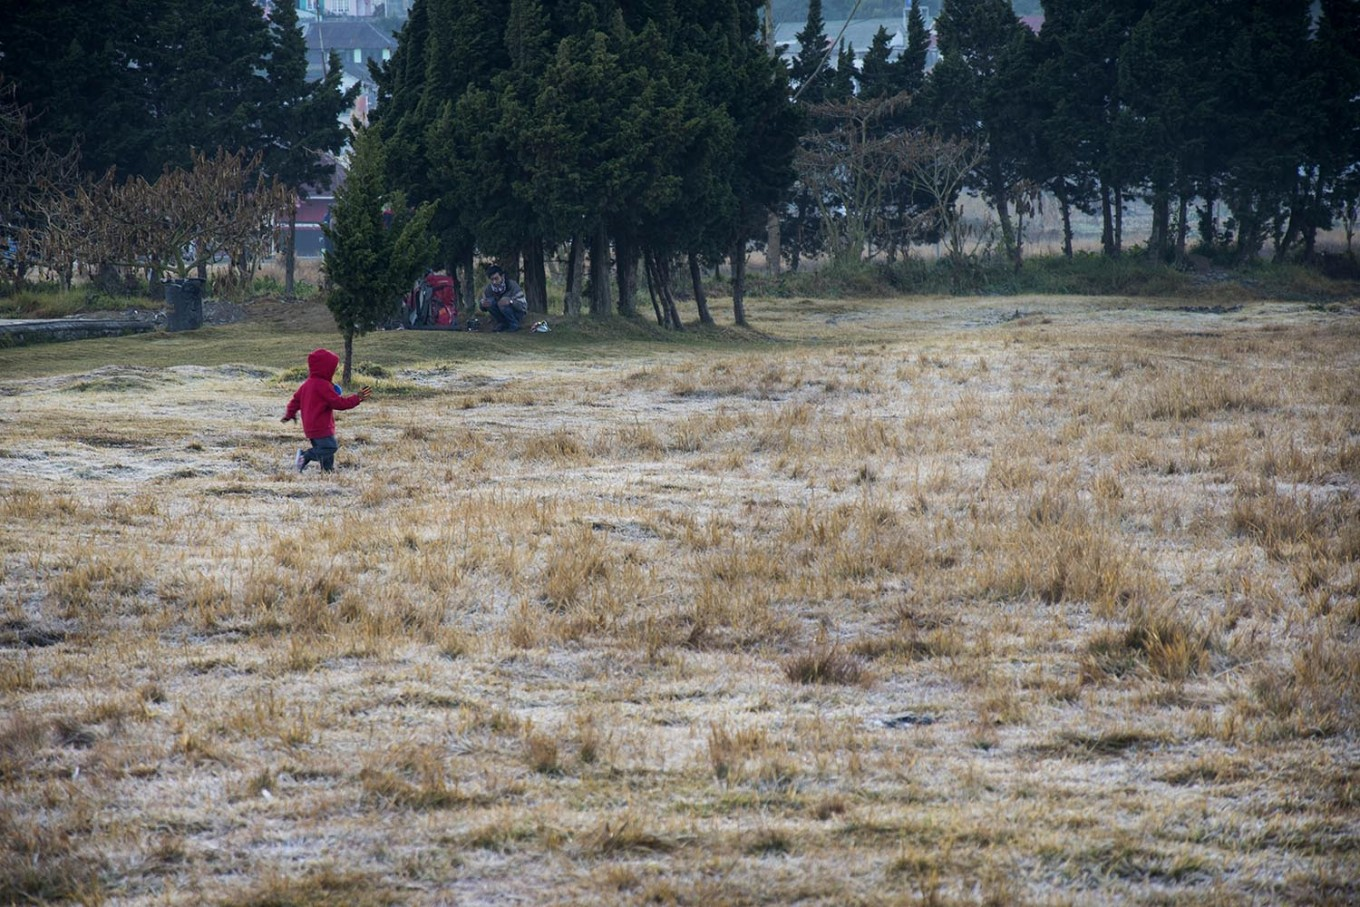 A children runs around at the Arjuna temple complex while enjoying the cold weather. JP/Tarko Sudiarno